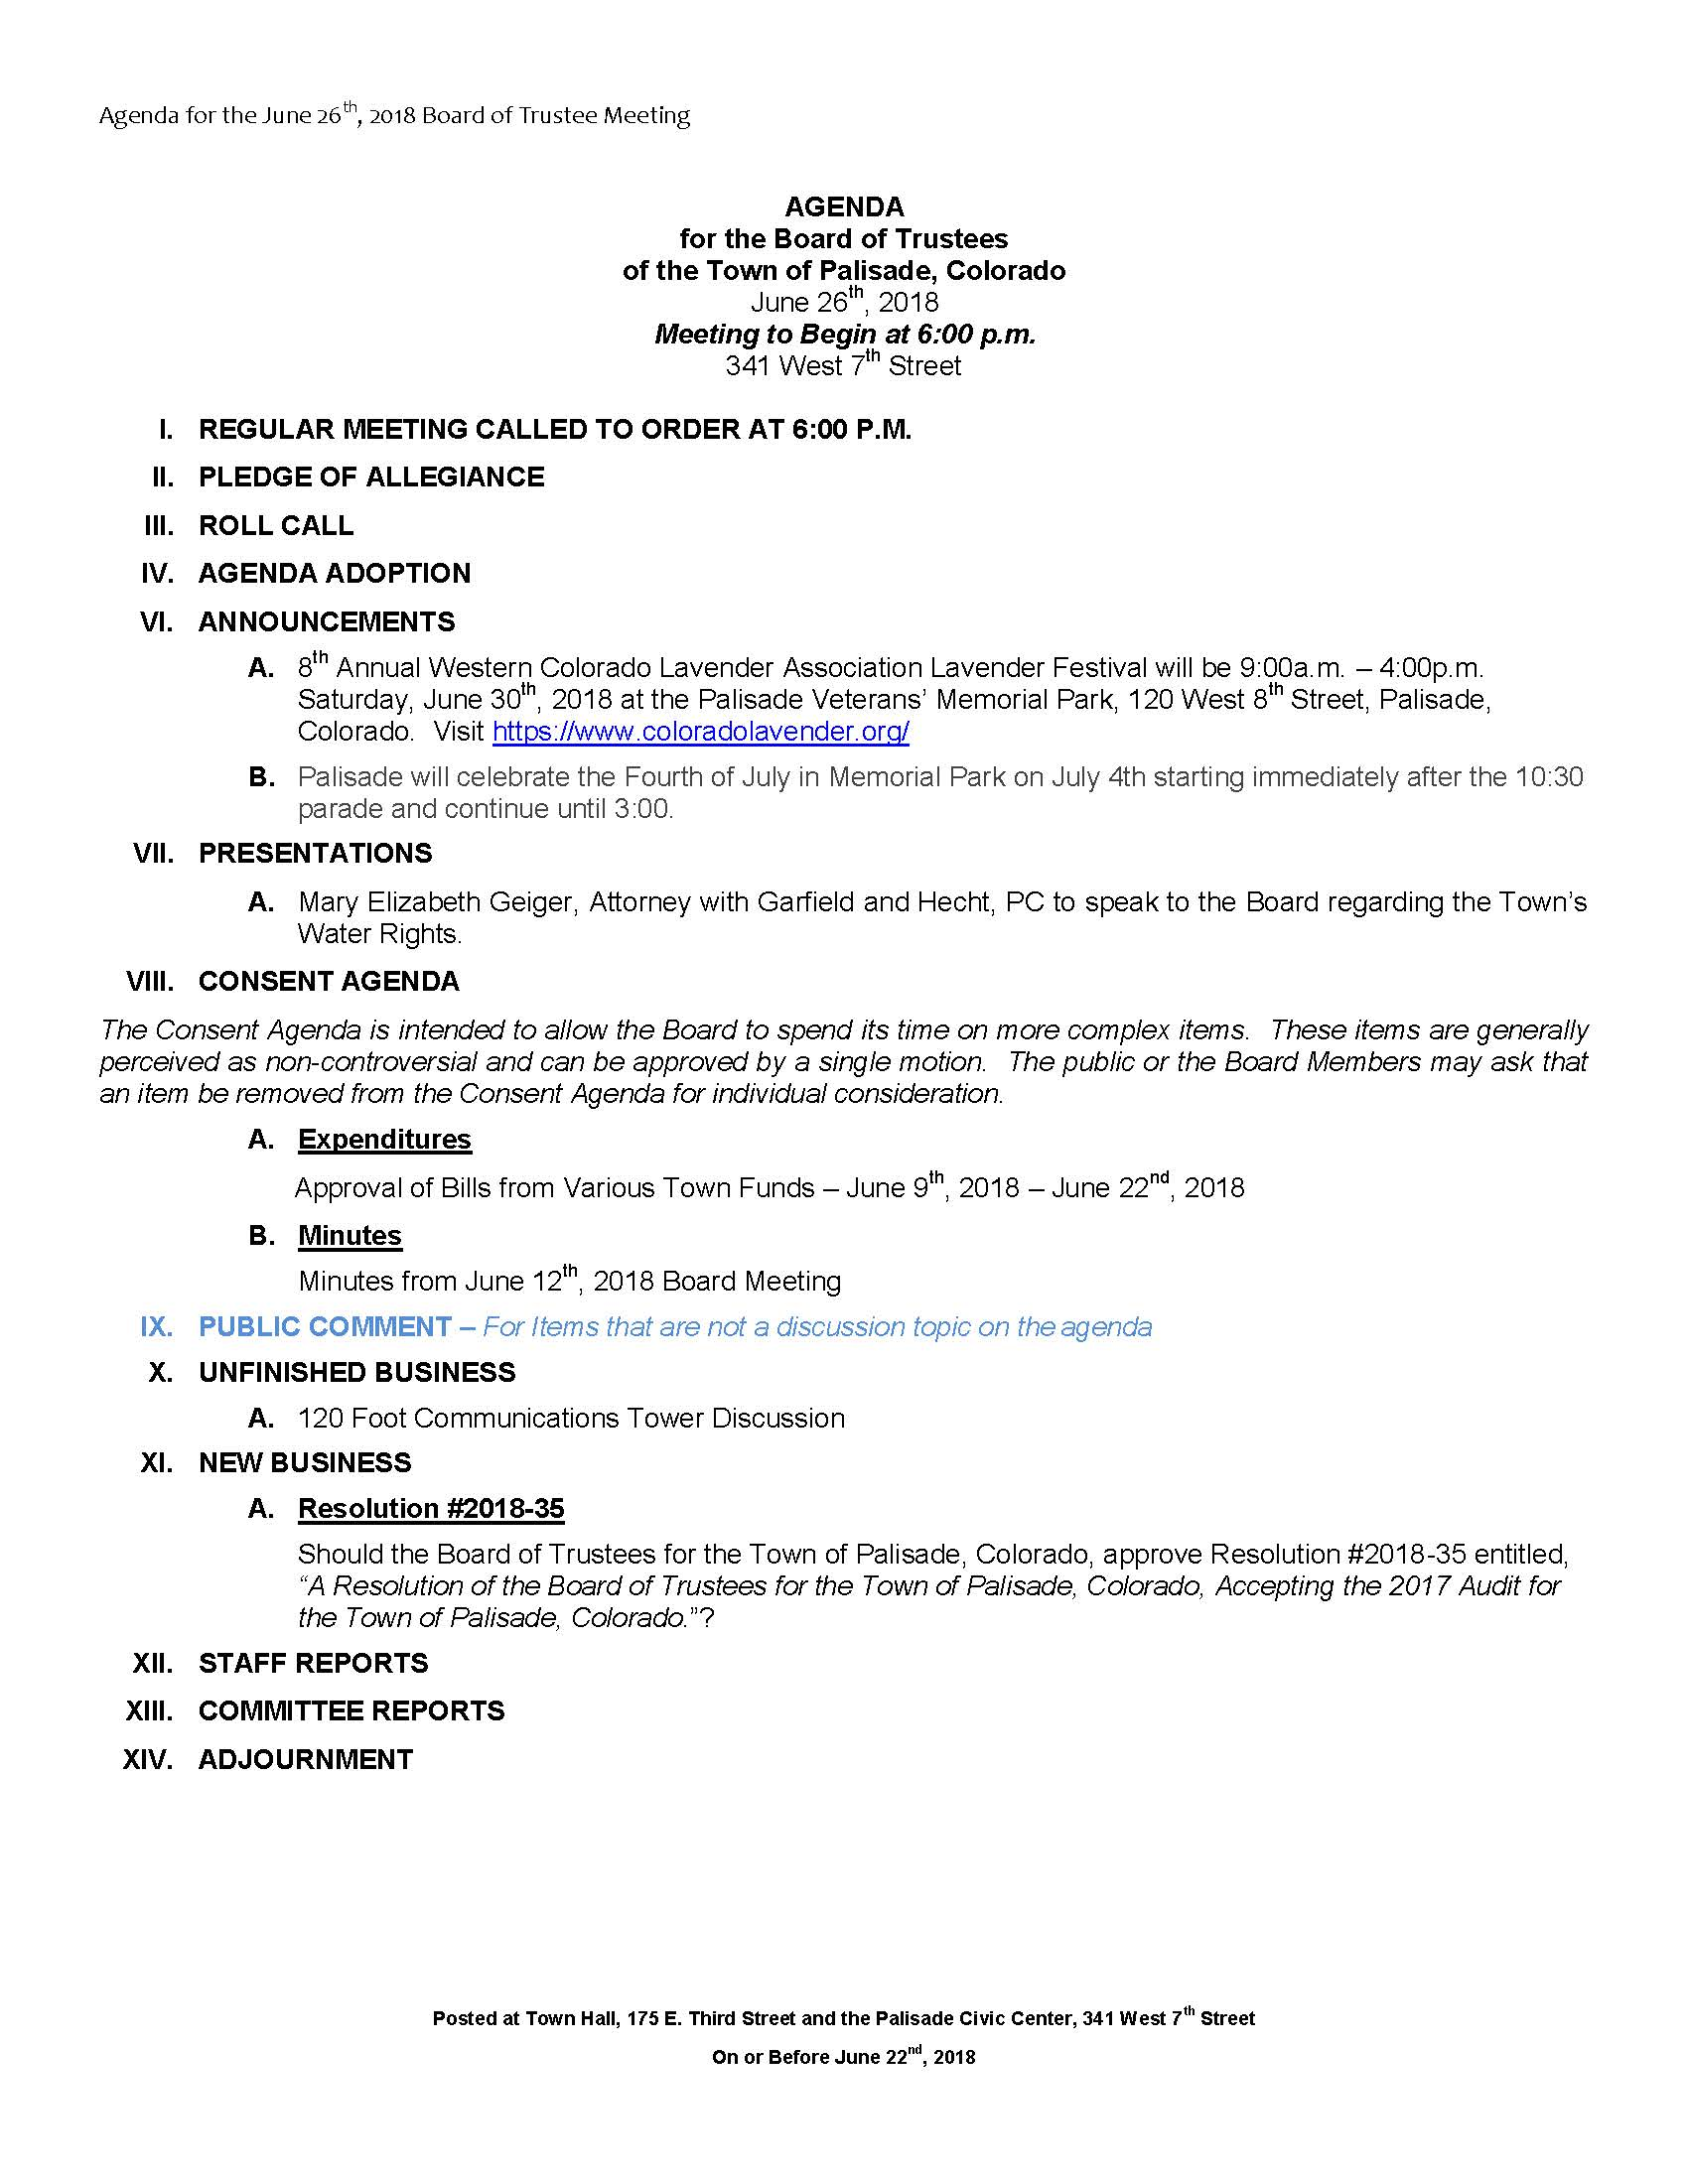 June 26th 2018 Board Meeting Agenda